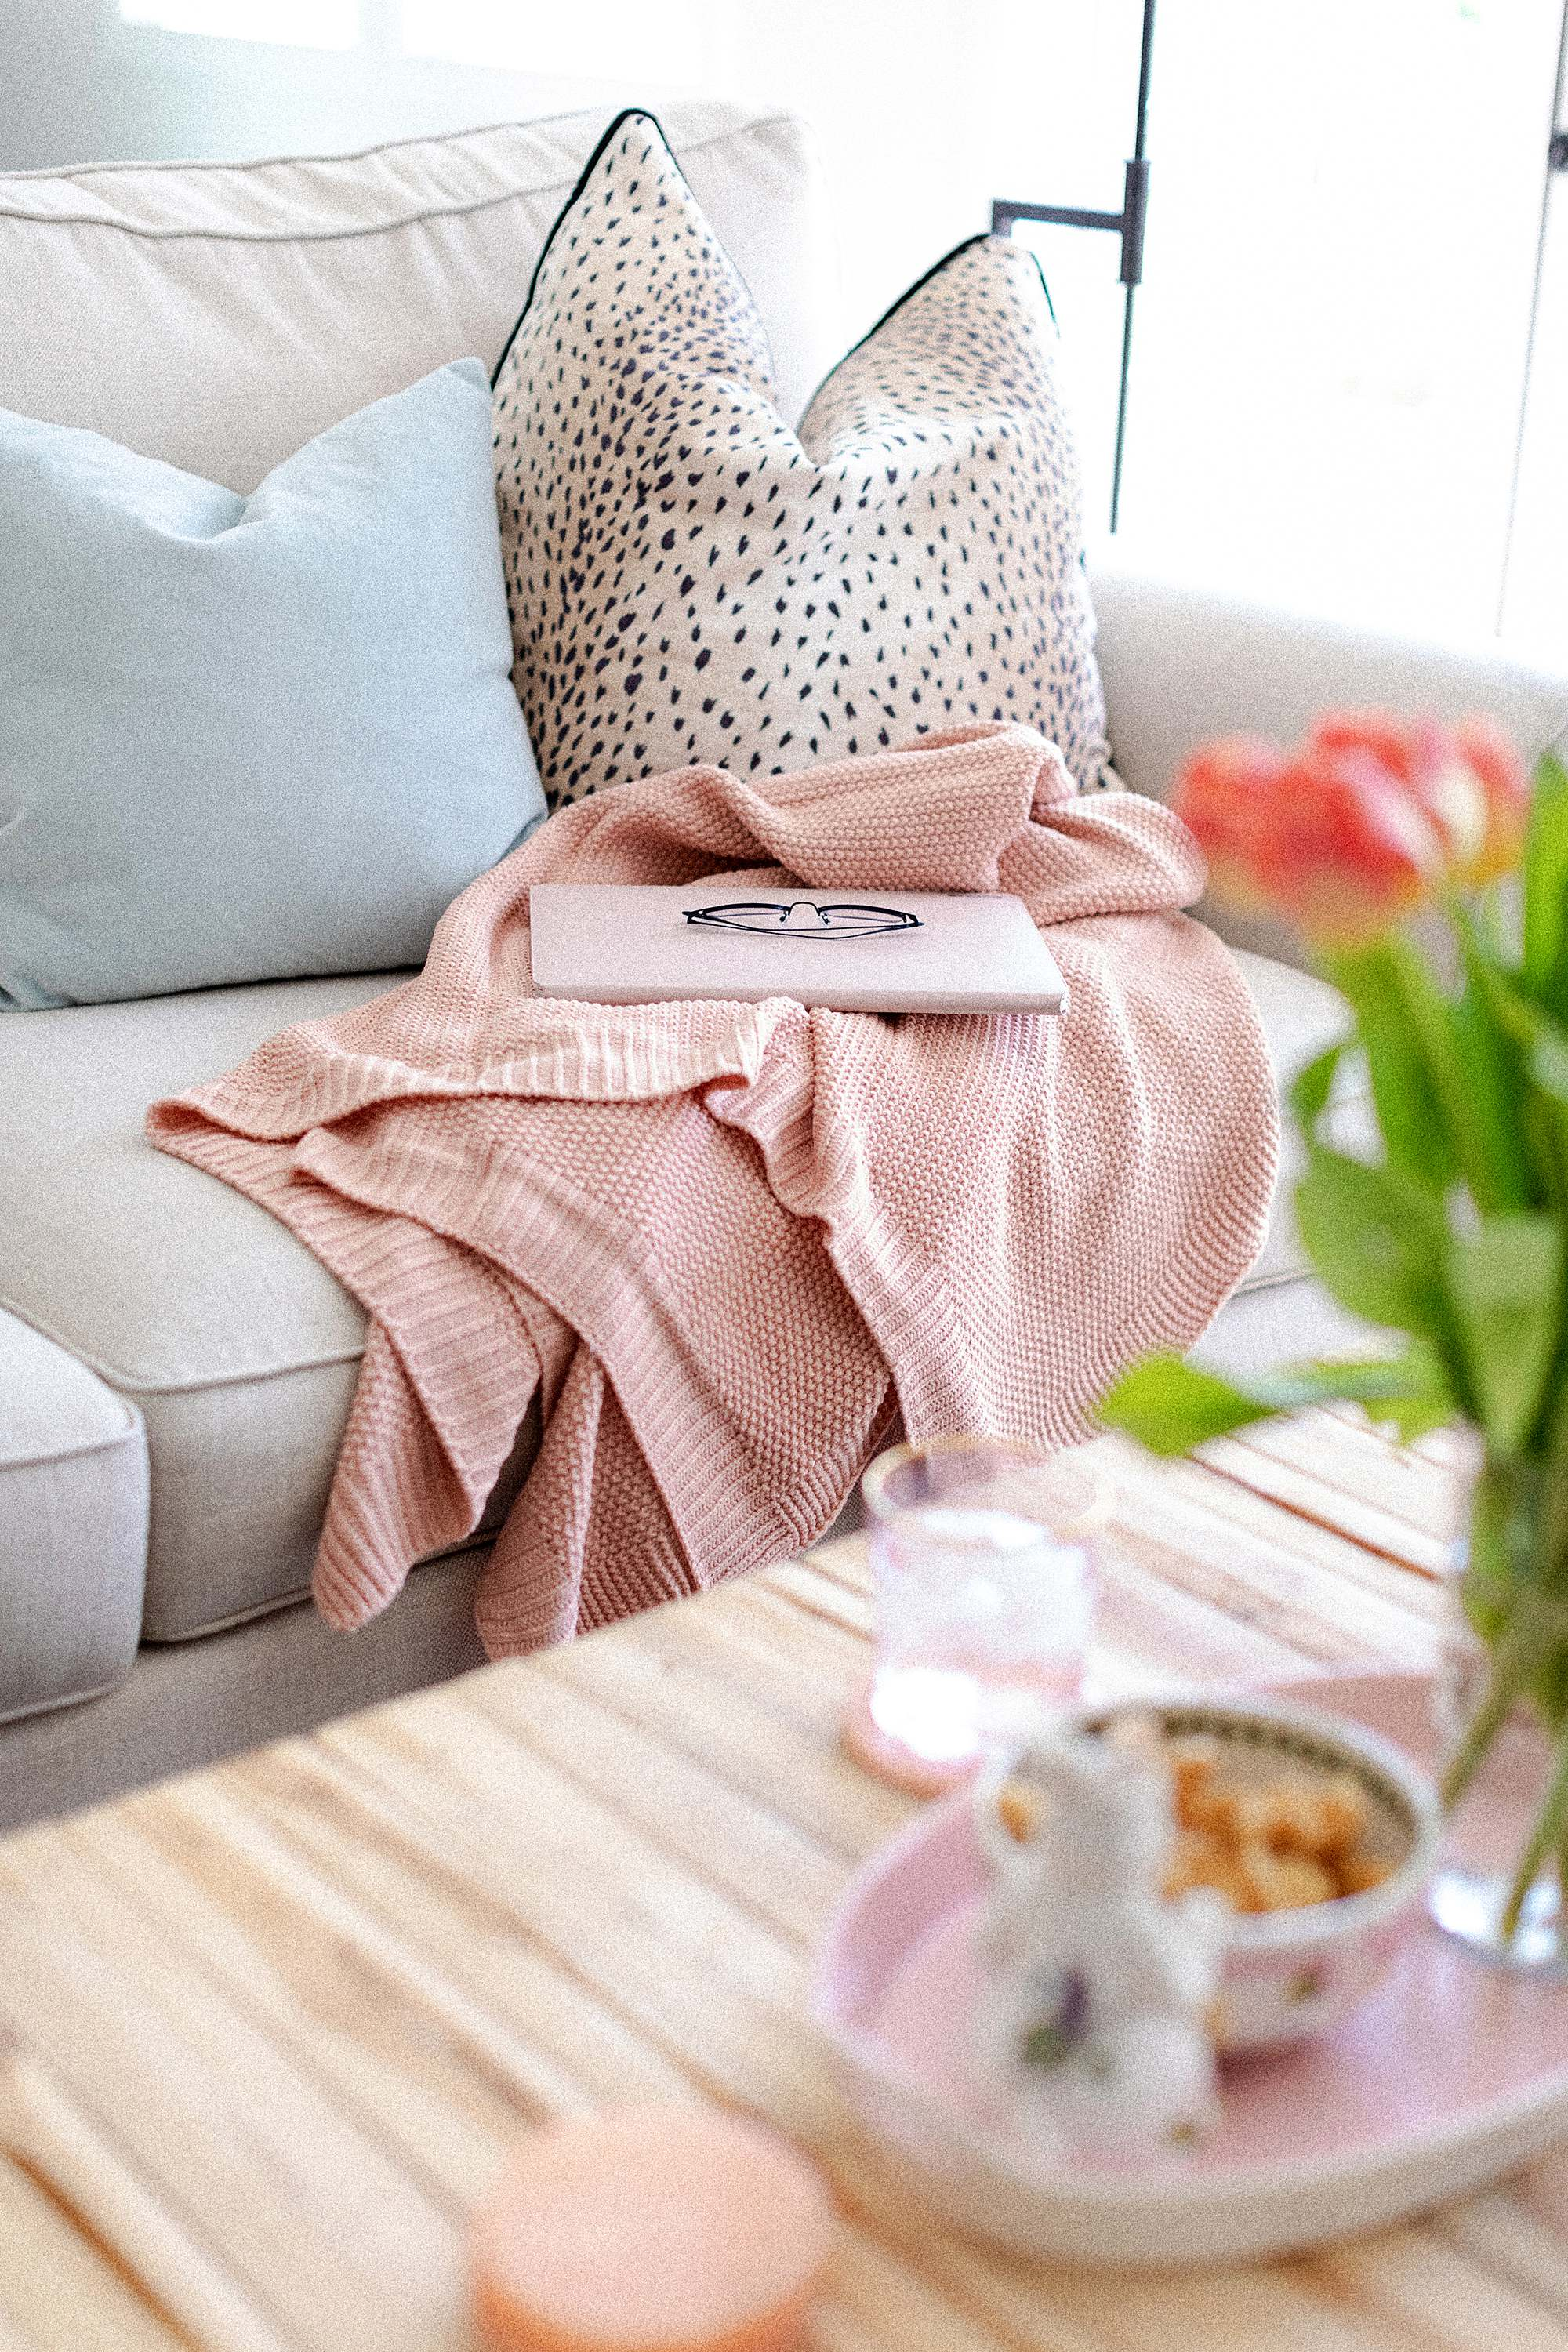 pink throw - lifestyle blogger Diana Elizabeth traditional home blog